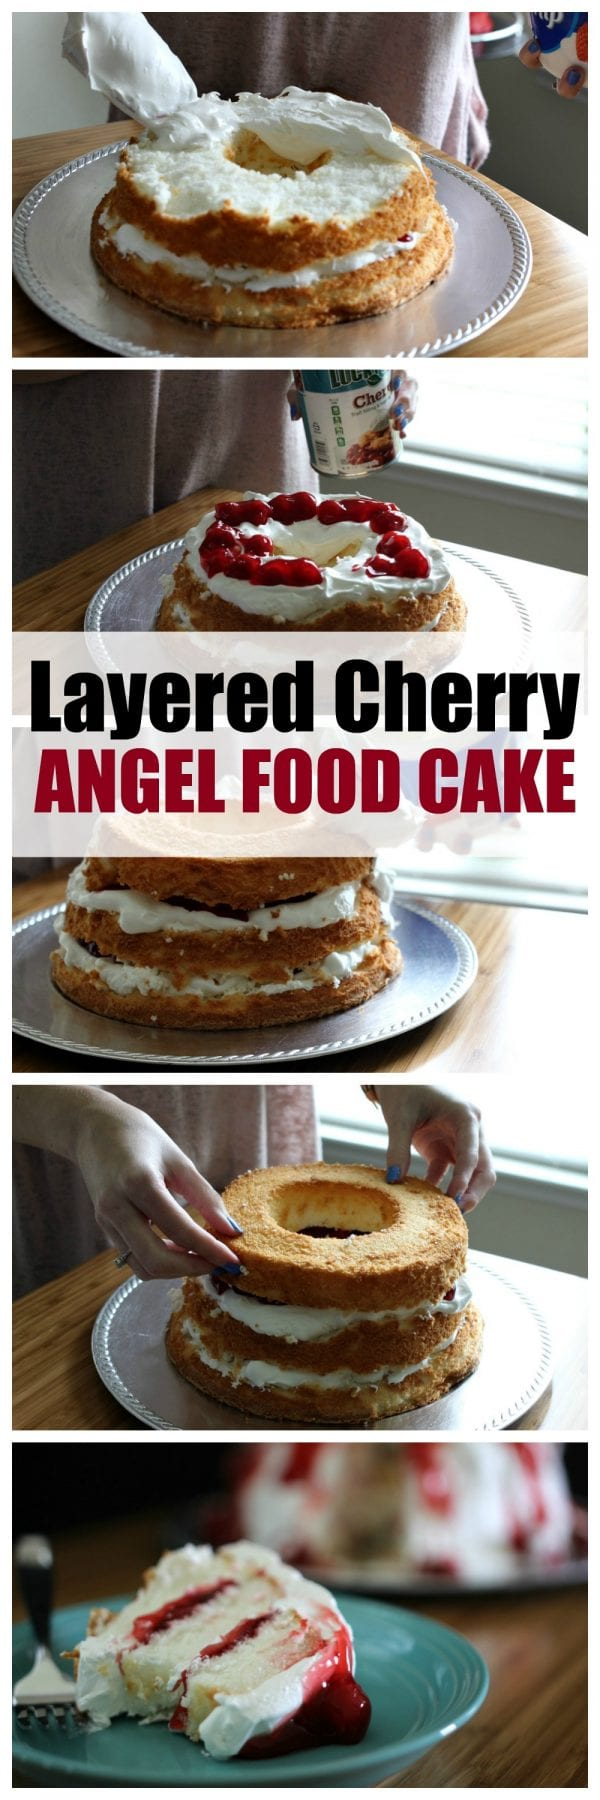 This Layered Cherry Angel Food Cake requires 3 ingredients and about 15 minutes of your time. It's easy, delicious and a crowd pleaser. If you're on the hunt for easy dessert recipes, this is for you. You can't go wrong with pie fillings, whipped topping and angel food cake! Click through to see a video with step by step instructions.